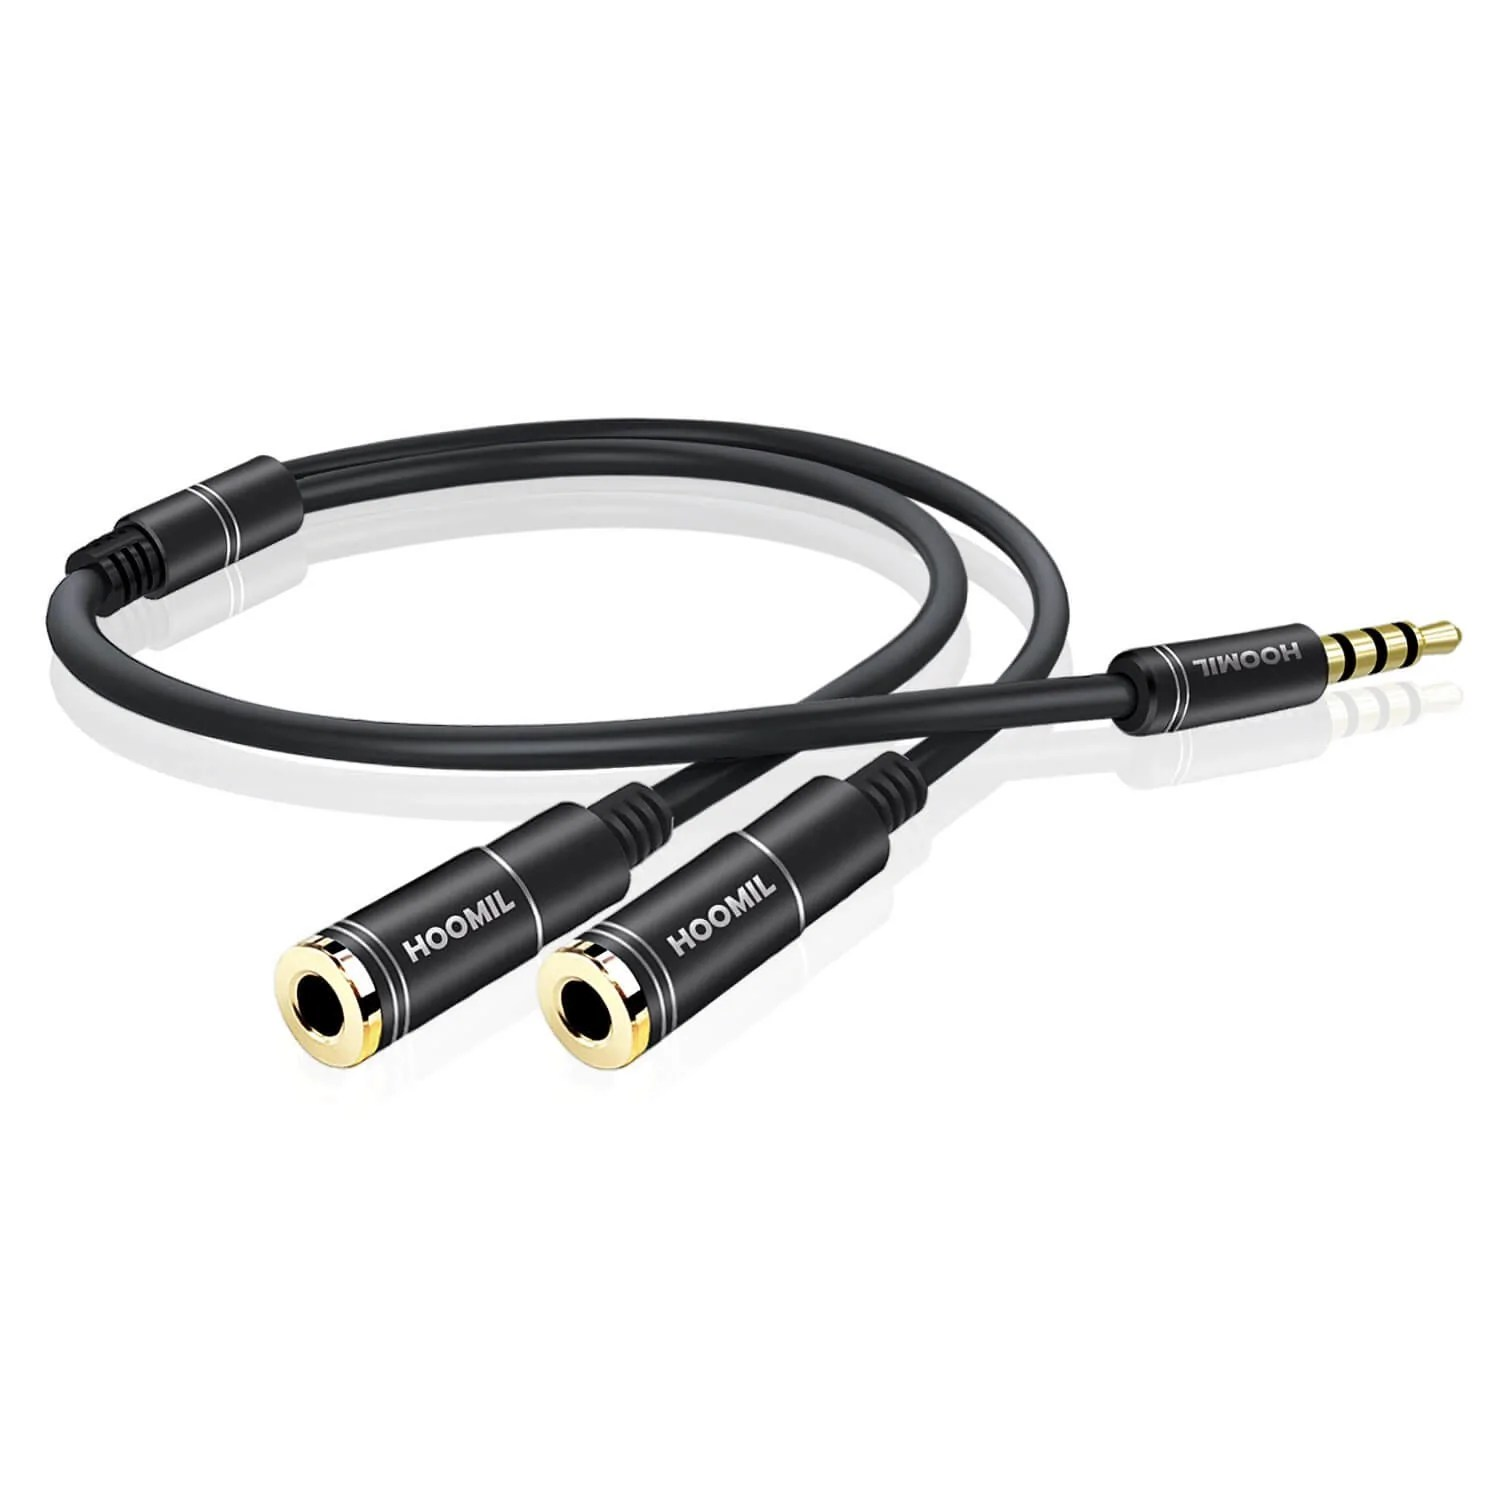 Splitter Kabel Phone Accessories Headphone Splitter 3 5mm Jack Male To 2 Port 3 5mm Female Cable Audio Stereo Y Splitter